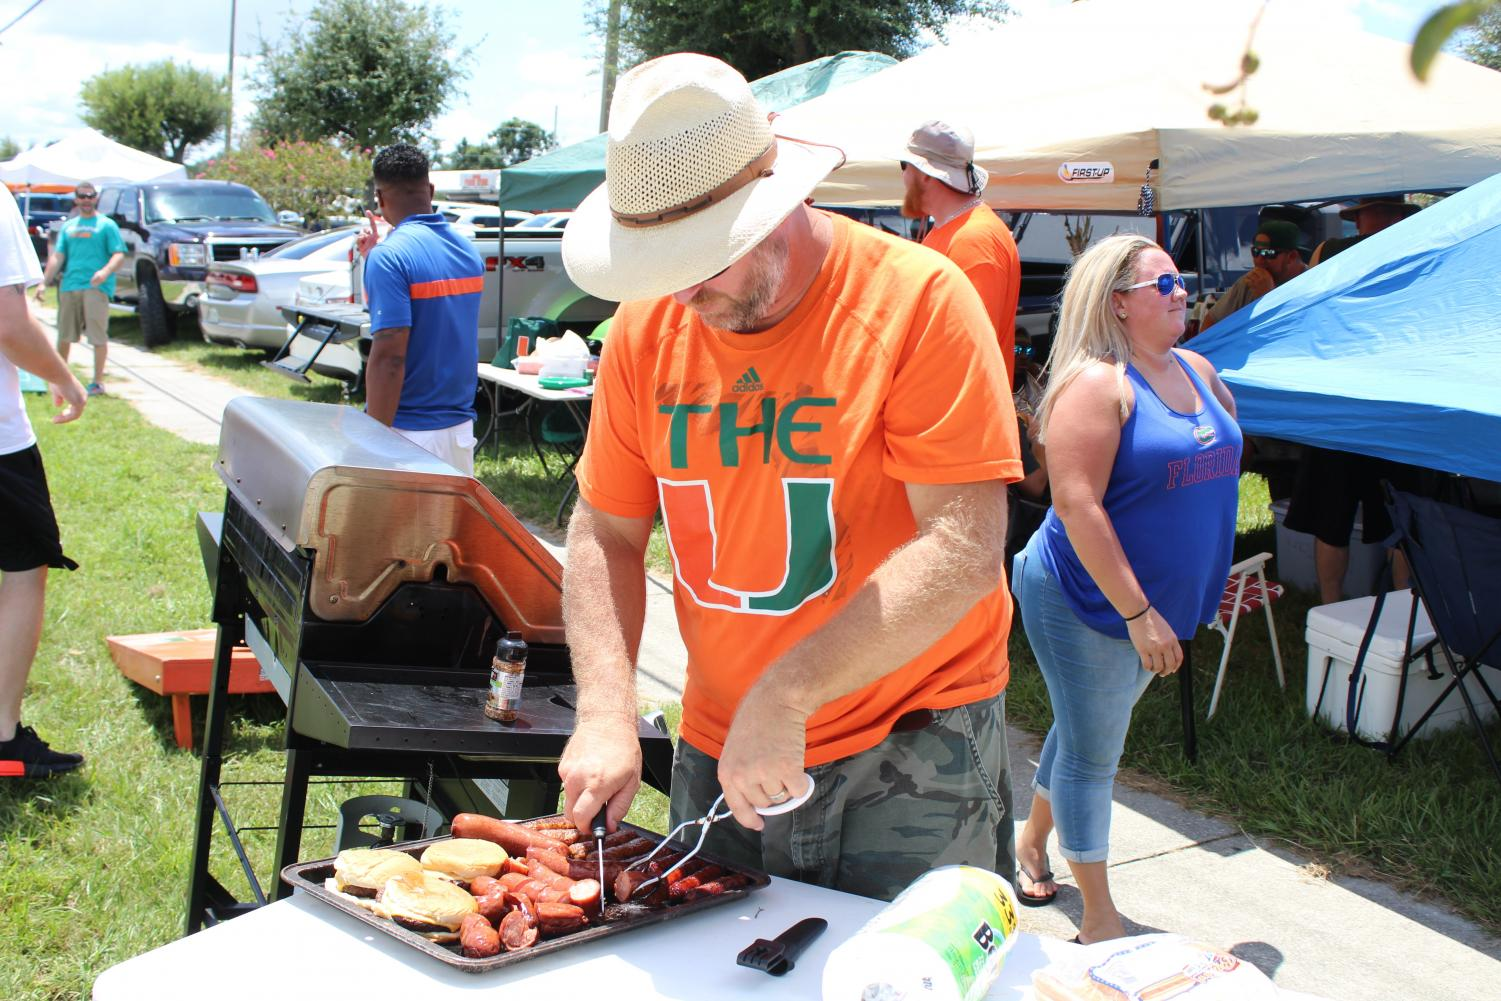 Trent Hopper prepares food during the tailgate.